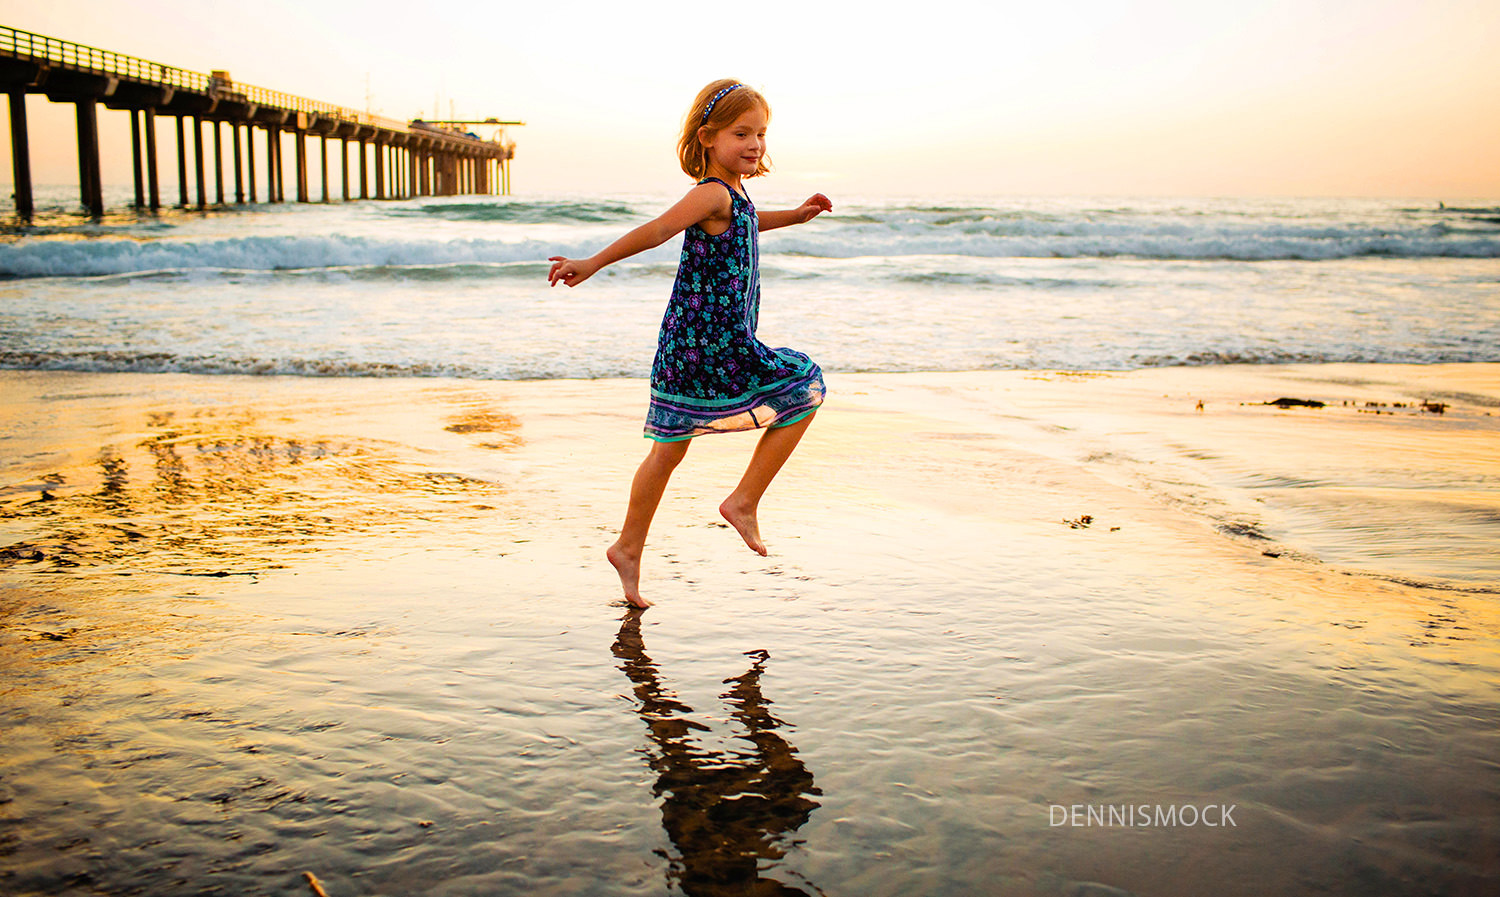 Little girl dancing at La Jolla sunset skipping the waves at photo session